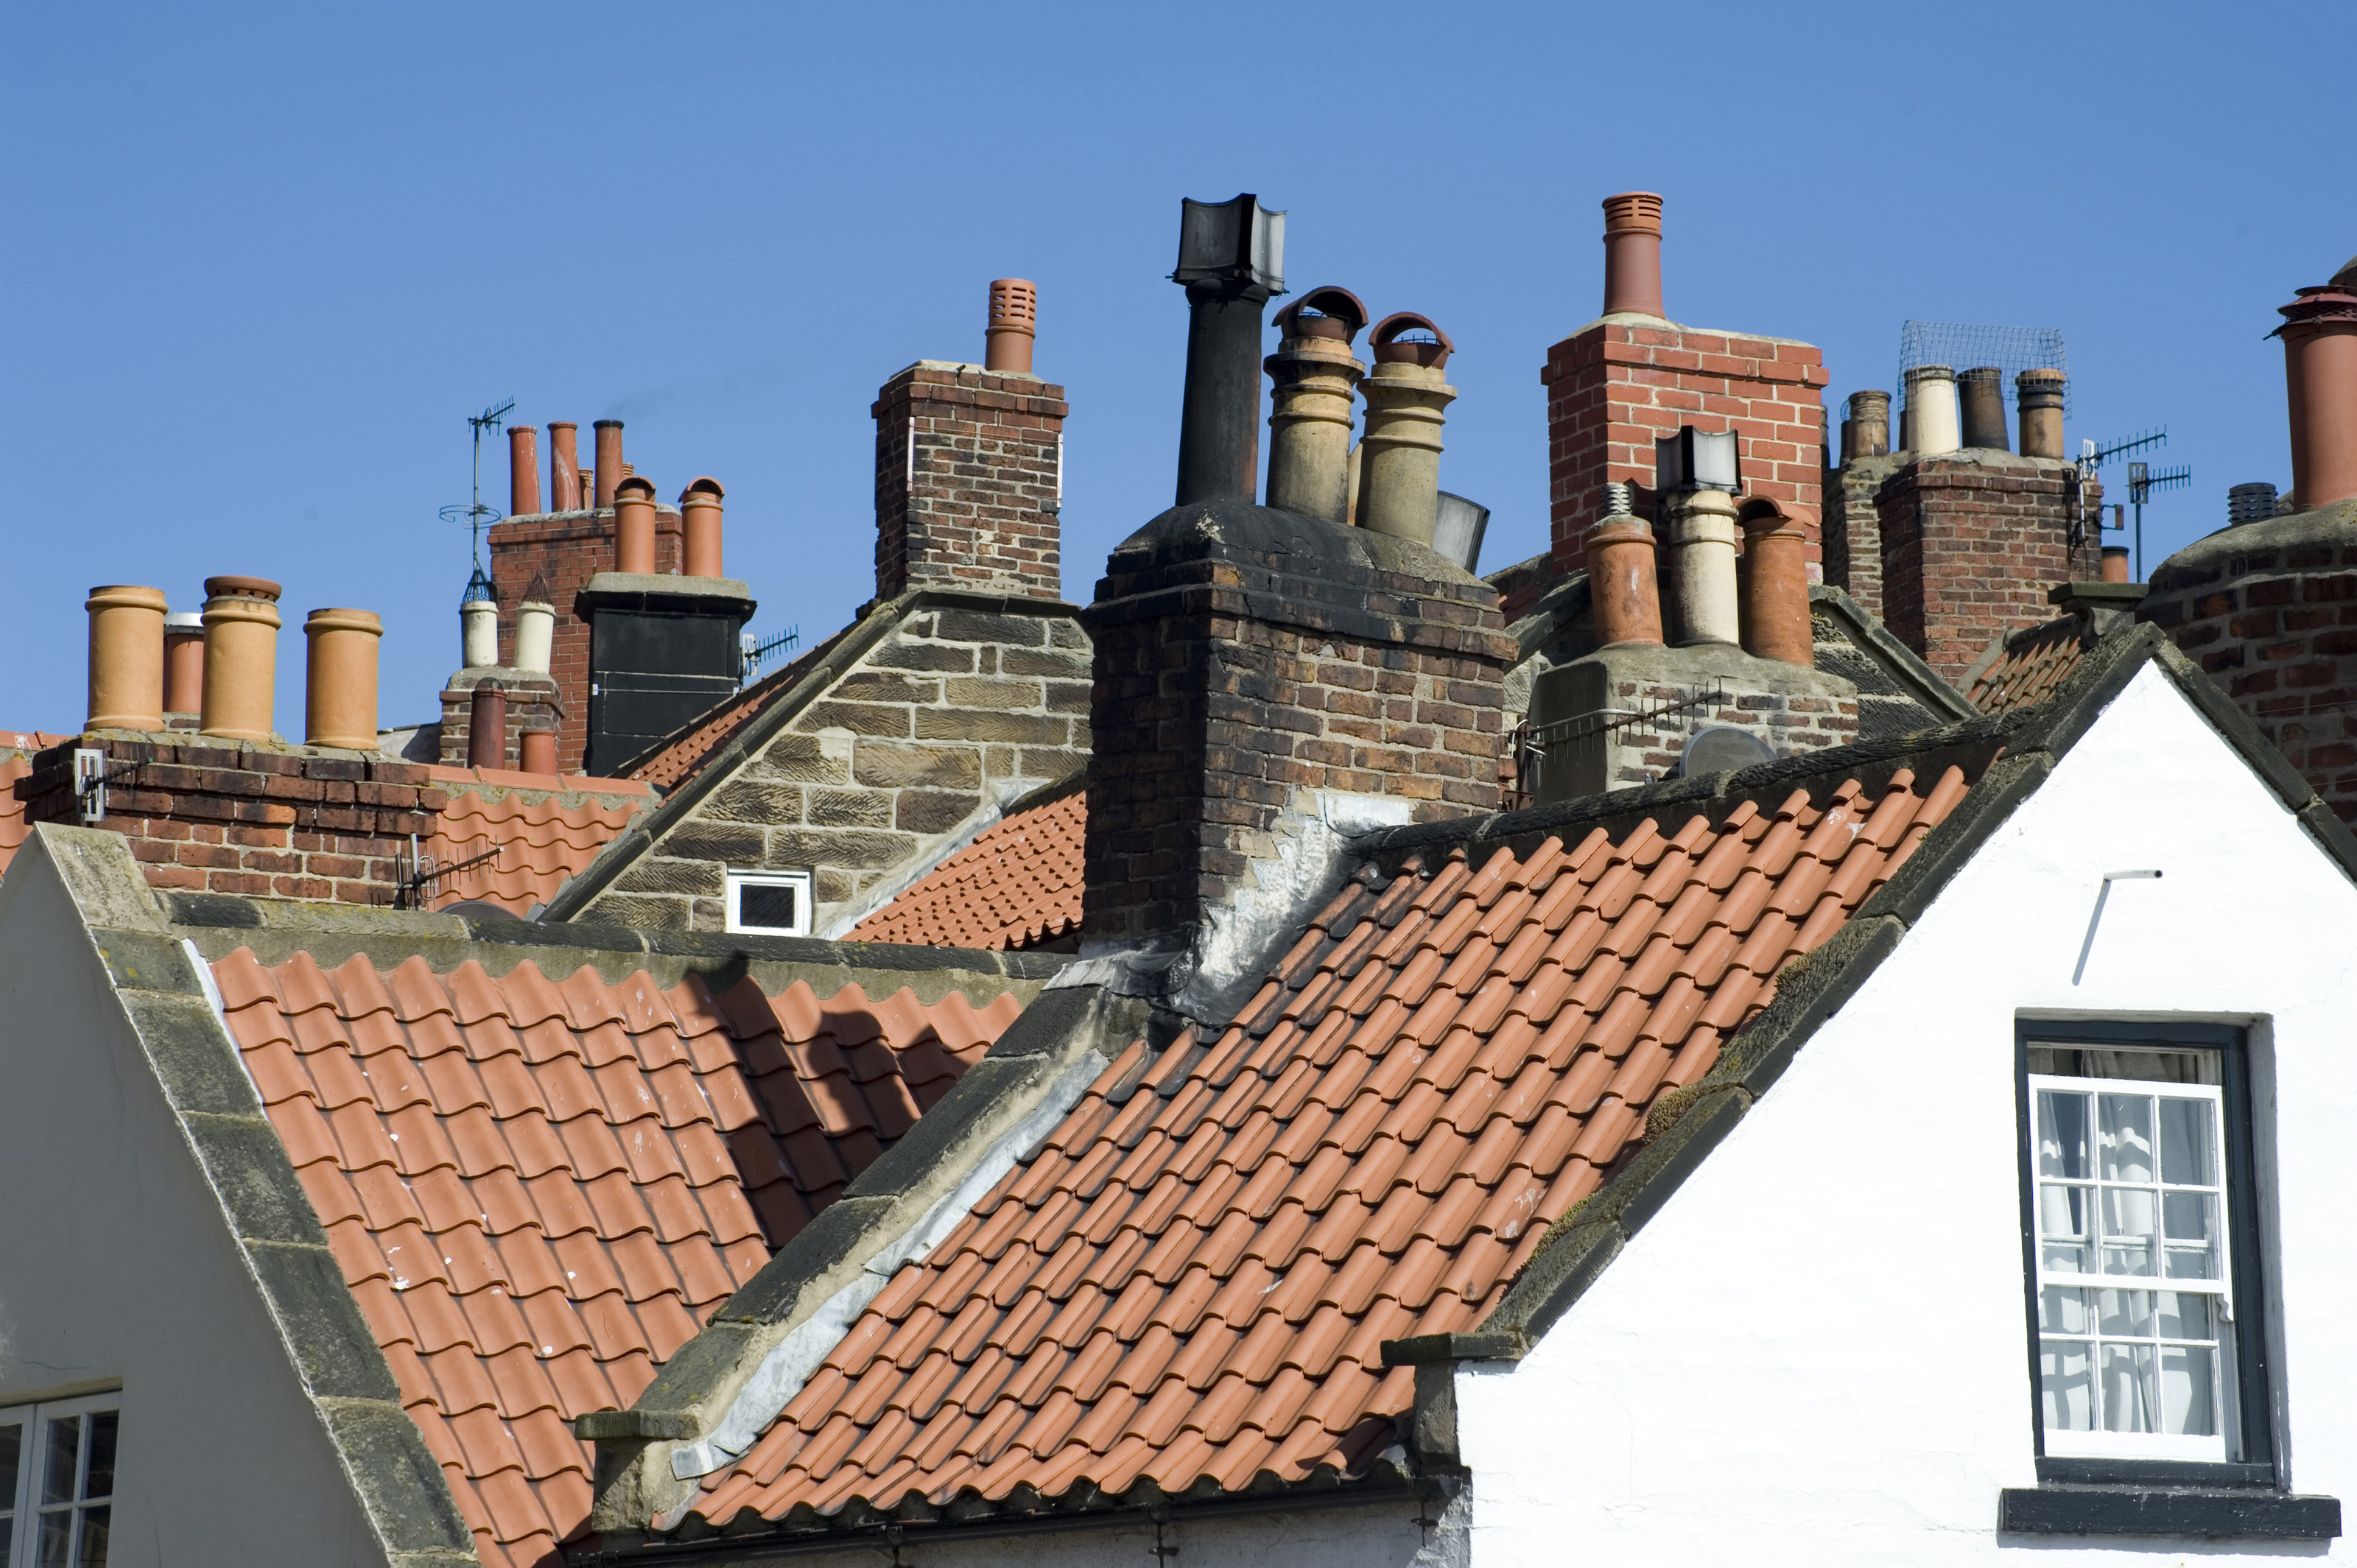 chimney Inspection and Camera Surveys In Suffolk and Norfolk